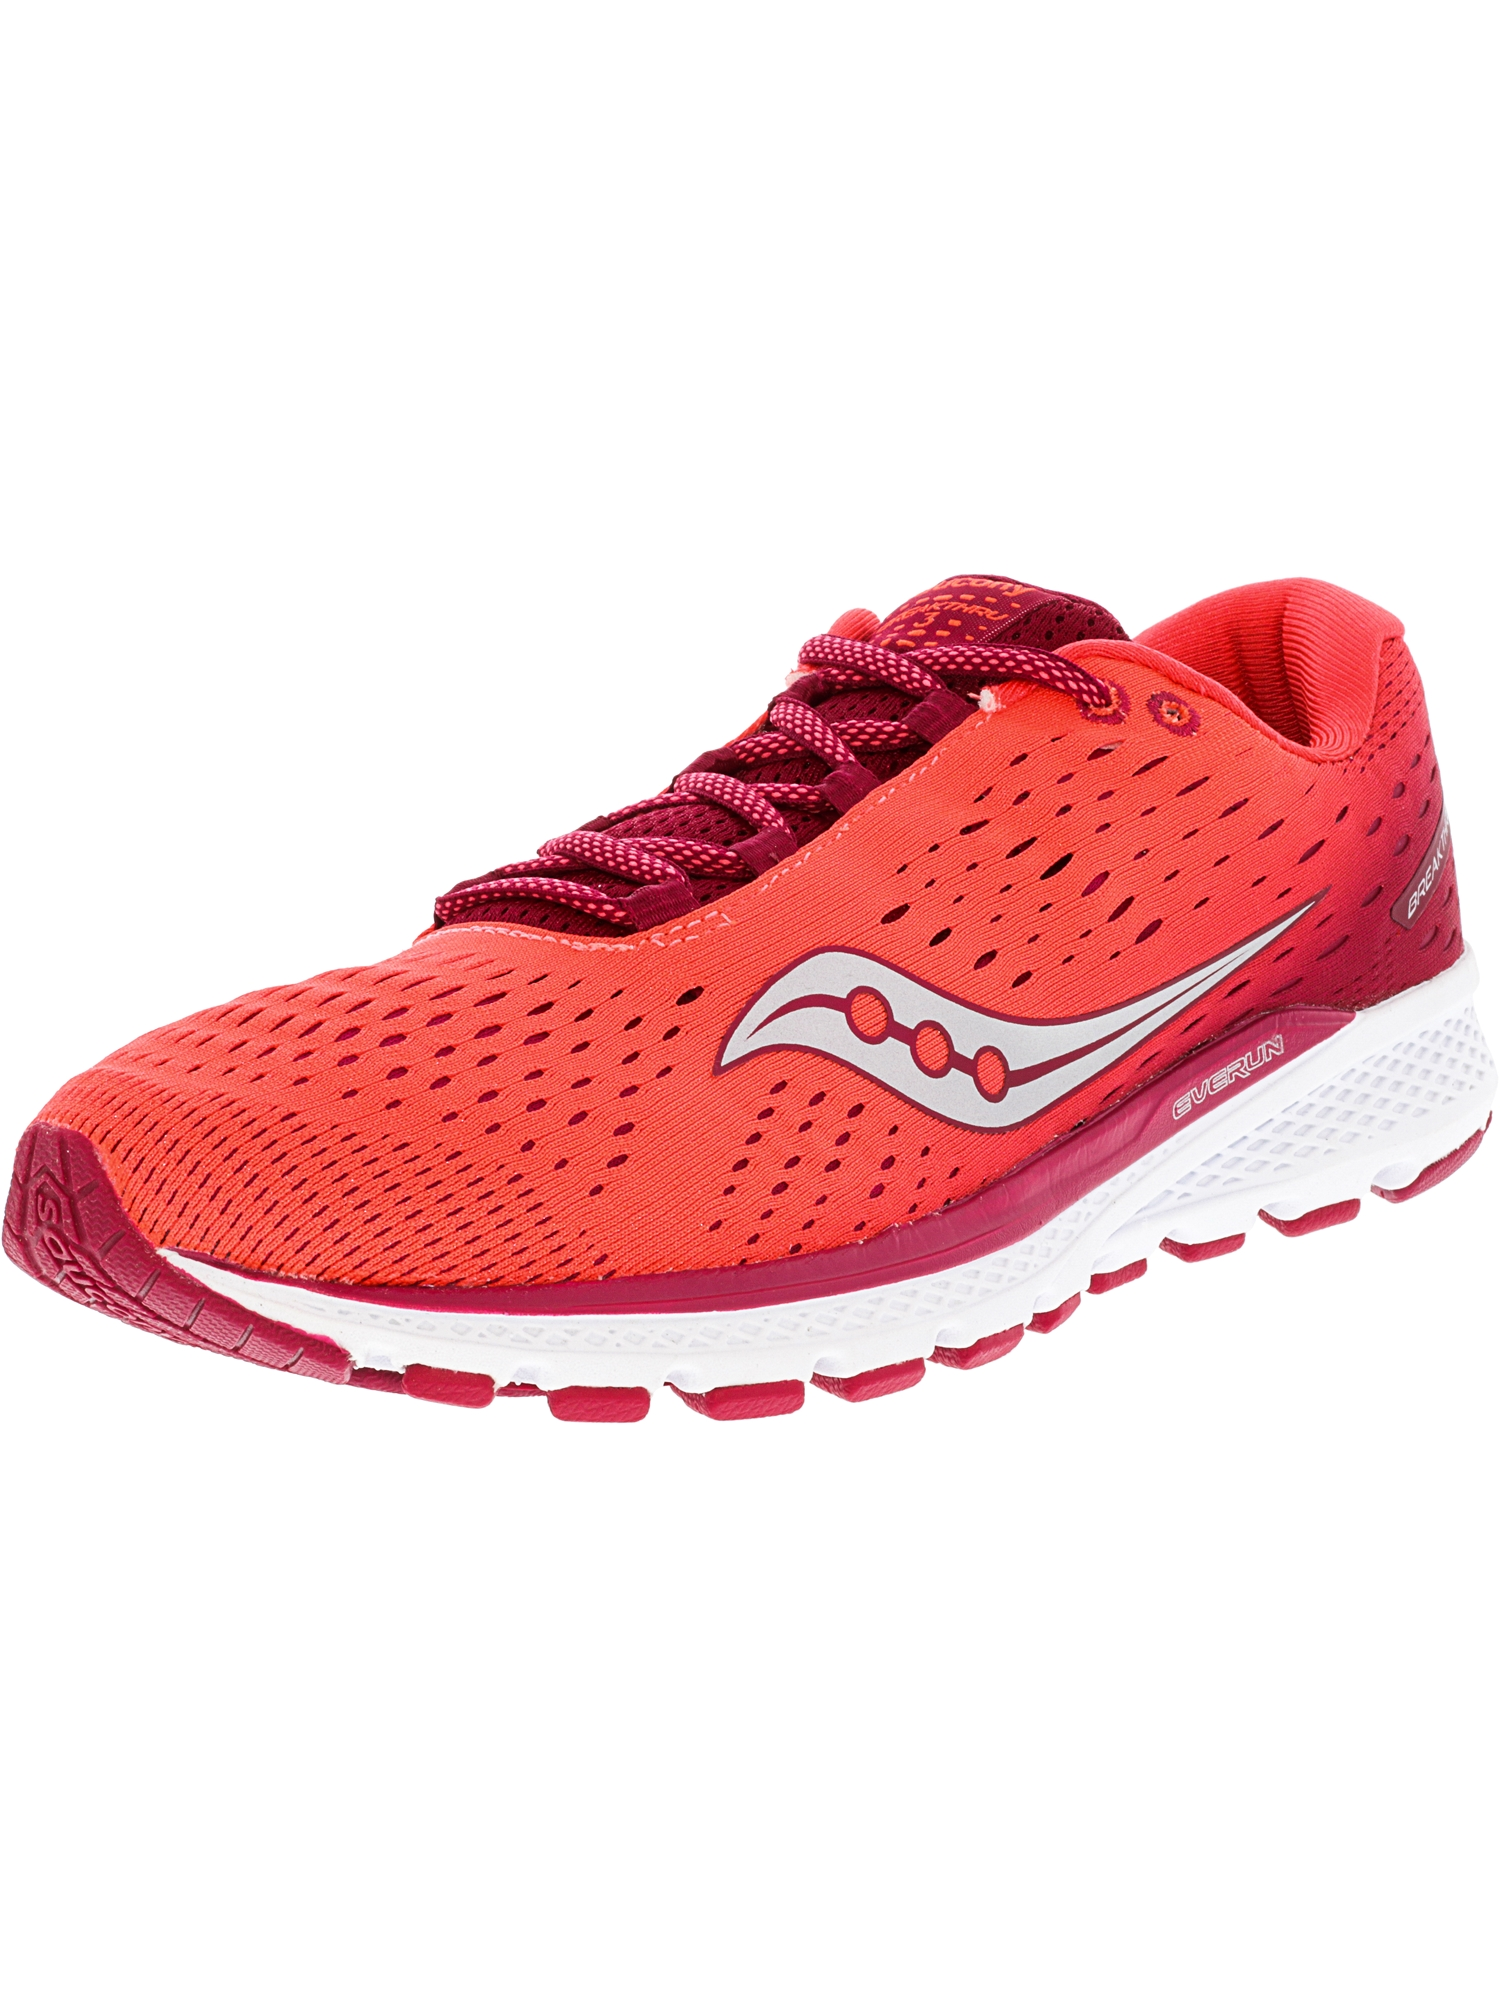 Saucony Women's Breakthru 3 Berry   Coral Ankle-High Running Shoe 6M by Saucony